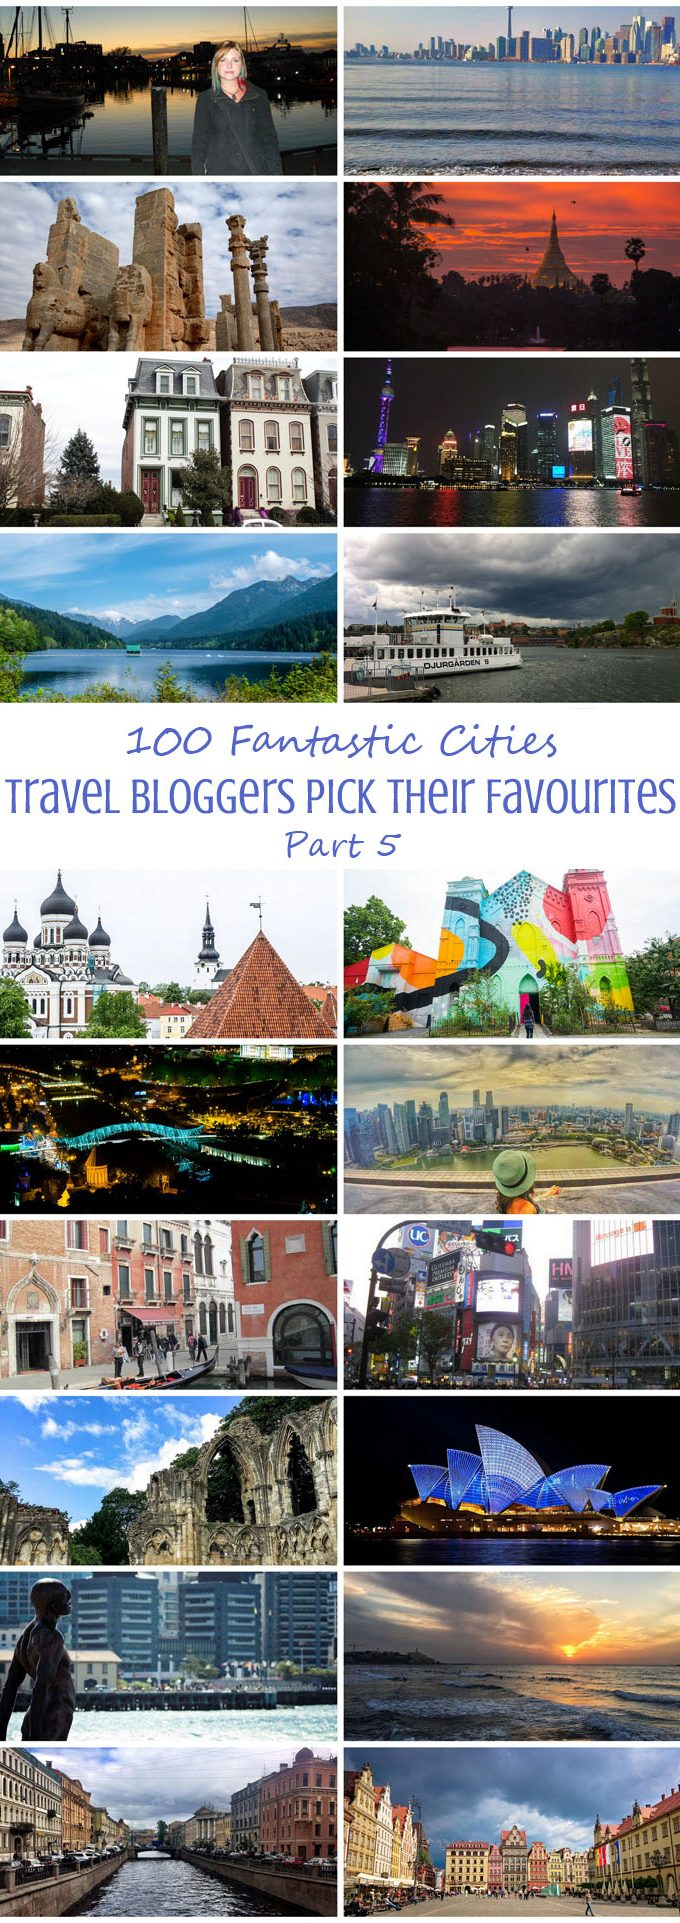 100 Fantastic Cities for City Breaks, as chosen by travel bloggers (part 5)